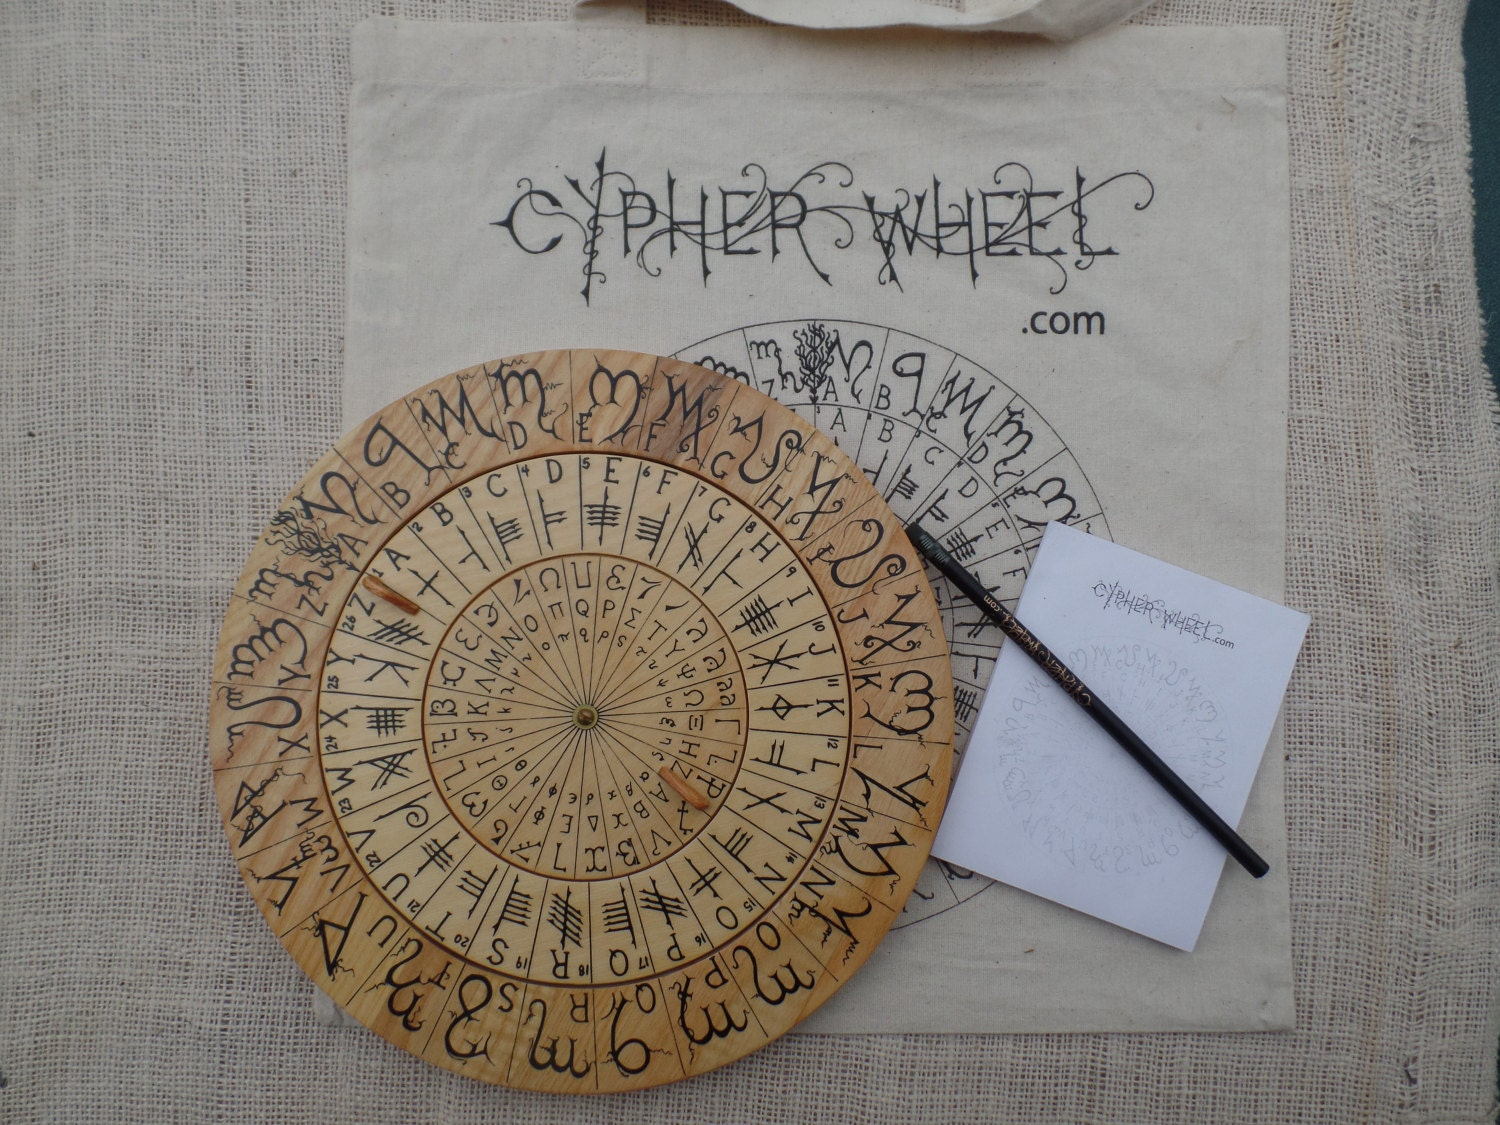 It's just a picture of Divine Printable Cipher Wheel